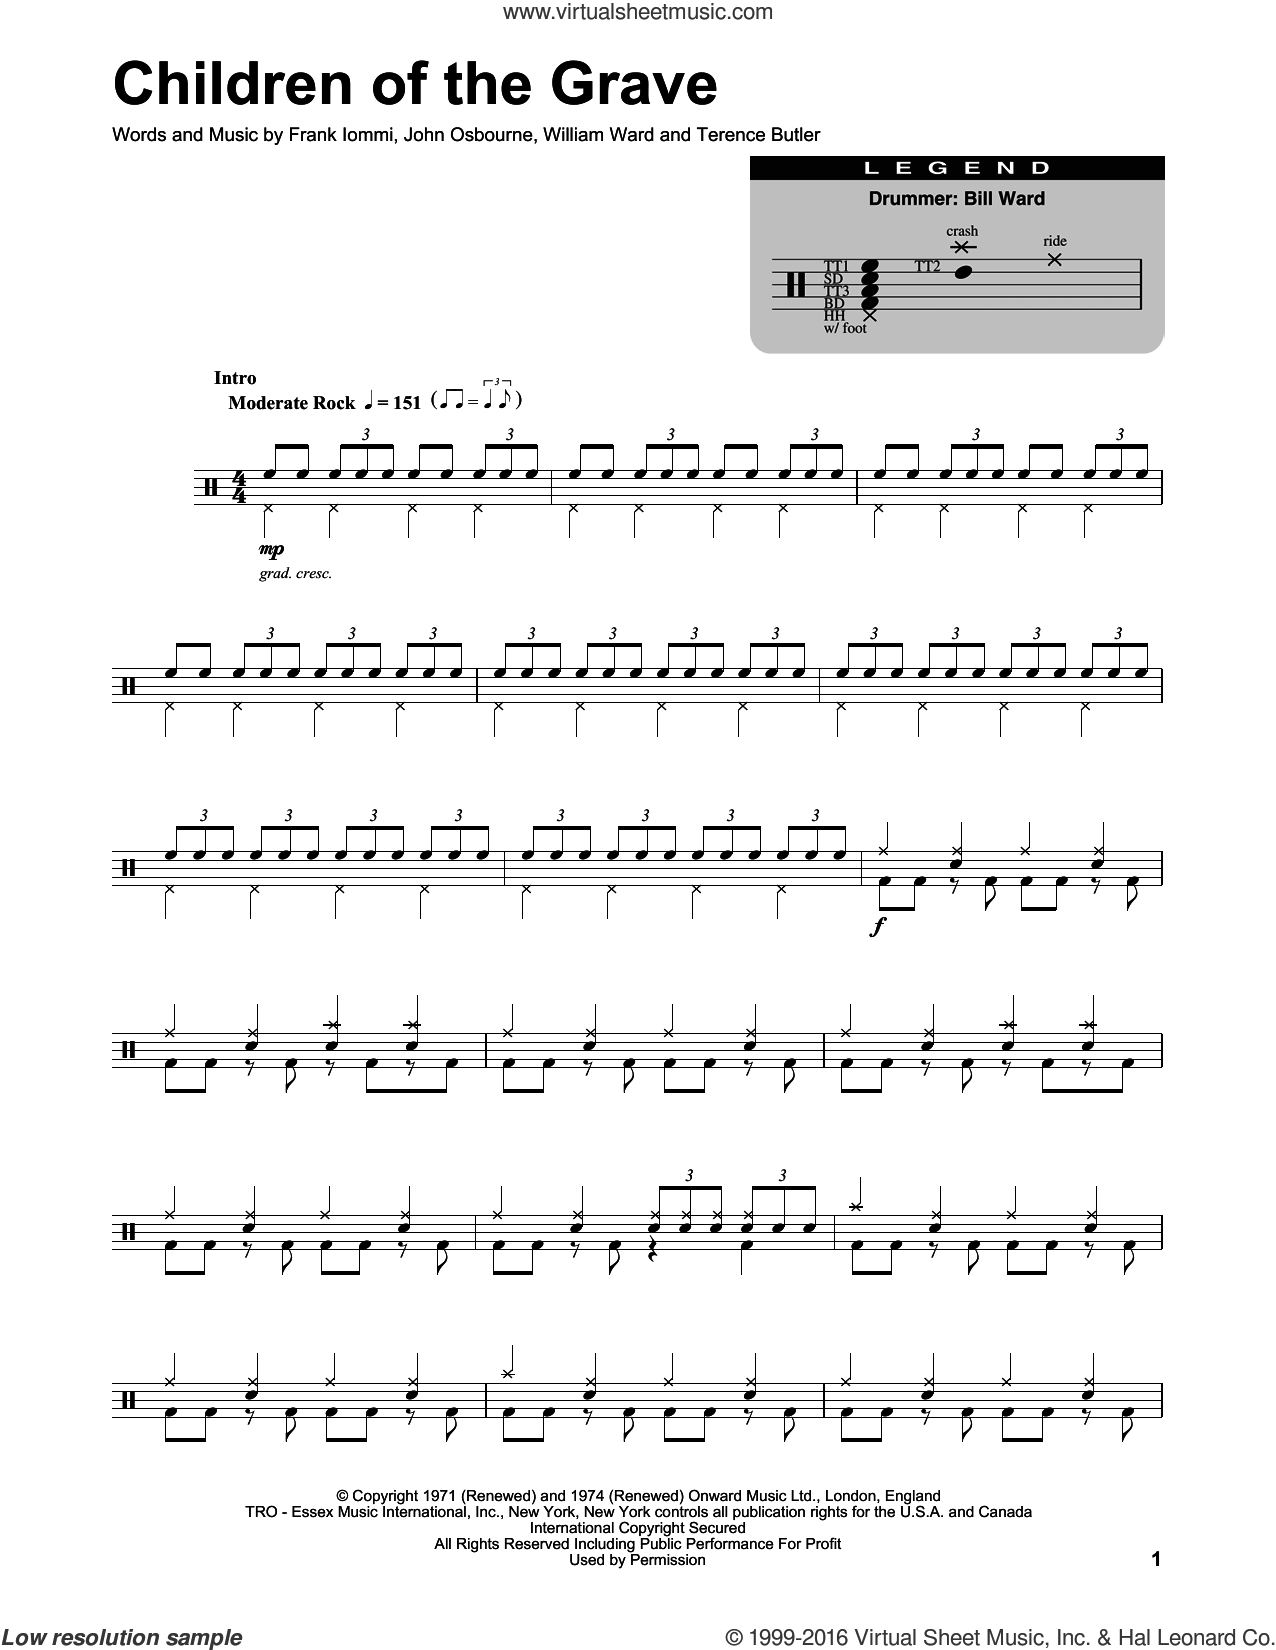 Children Of The Grave sheet music for drums by Black Sabbath, Frank Iommi, John Osbourne, Terence Butler and William Ward, intermediate skill level